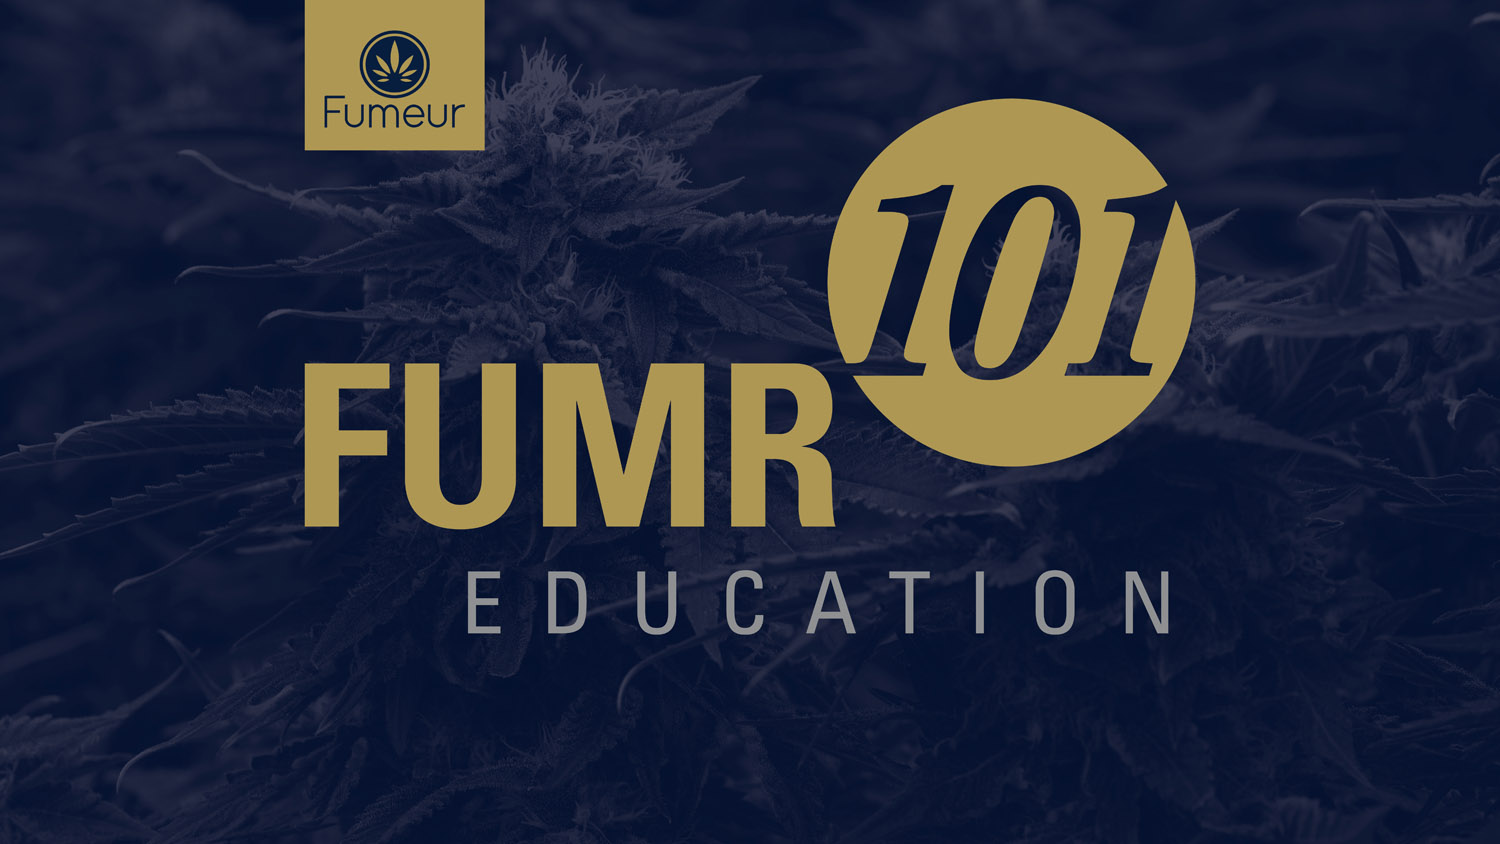 FUMR101 Education Logo in gold and navy blue